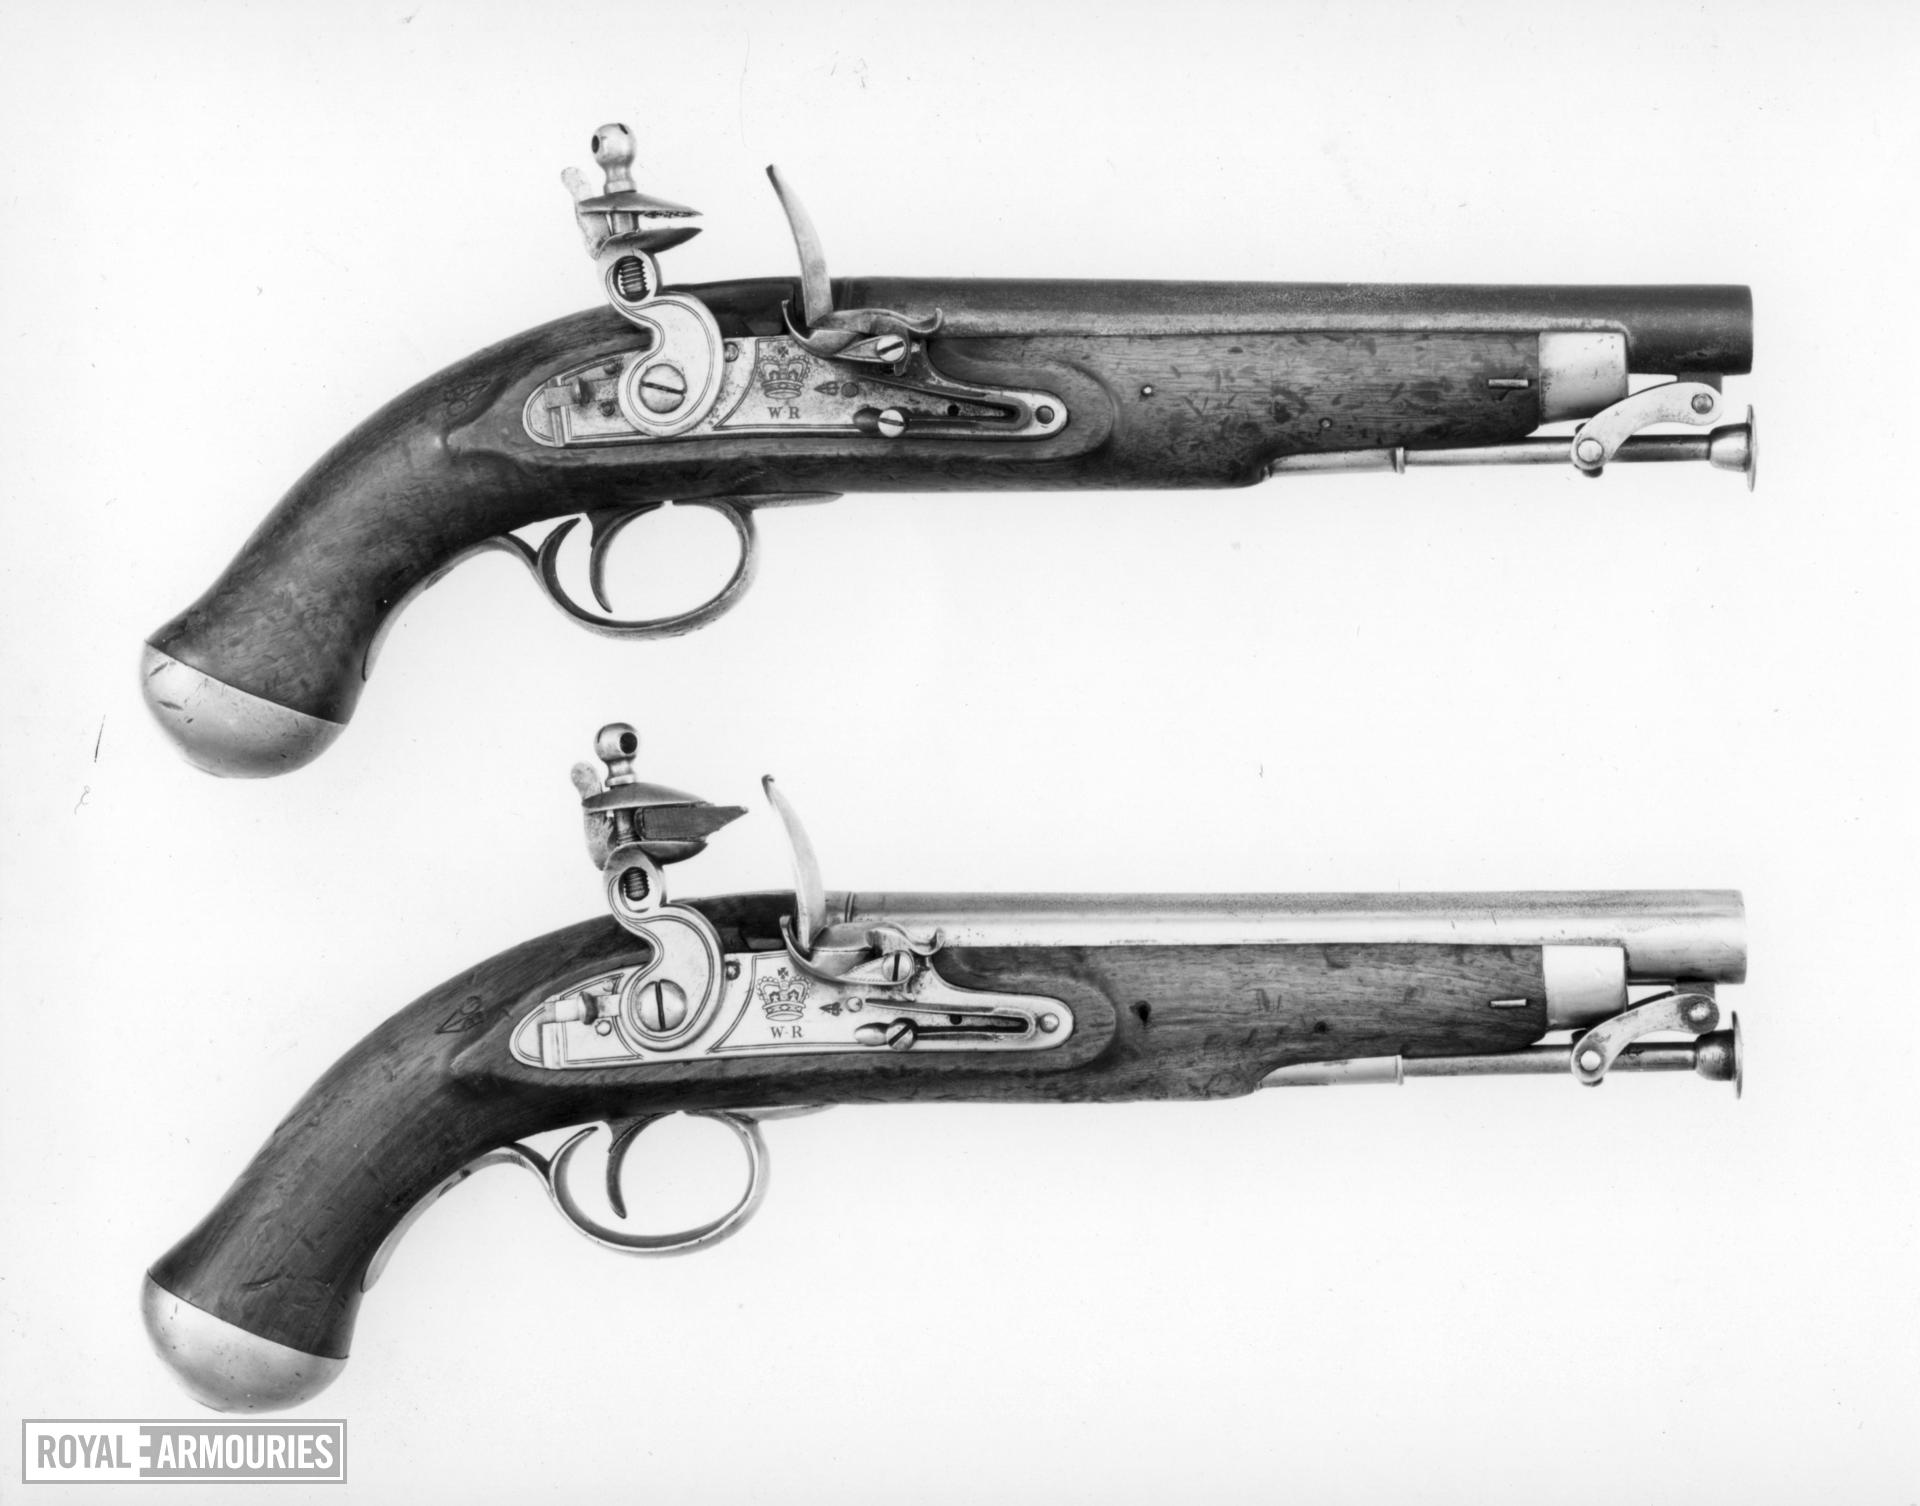 Flintlock military pistol - Paget Light Cavalry Pattern